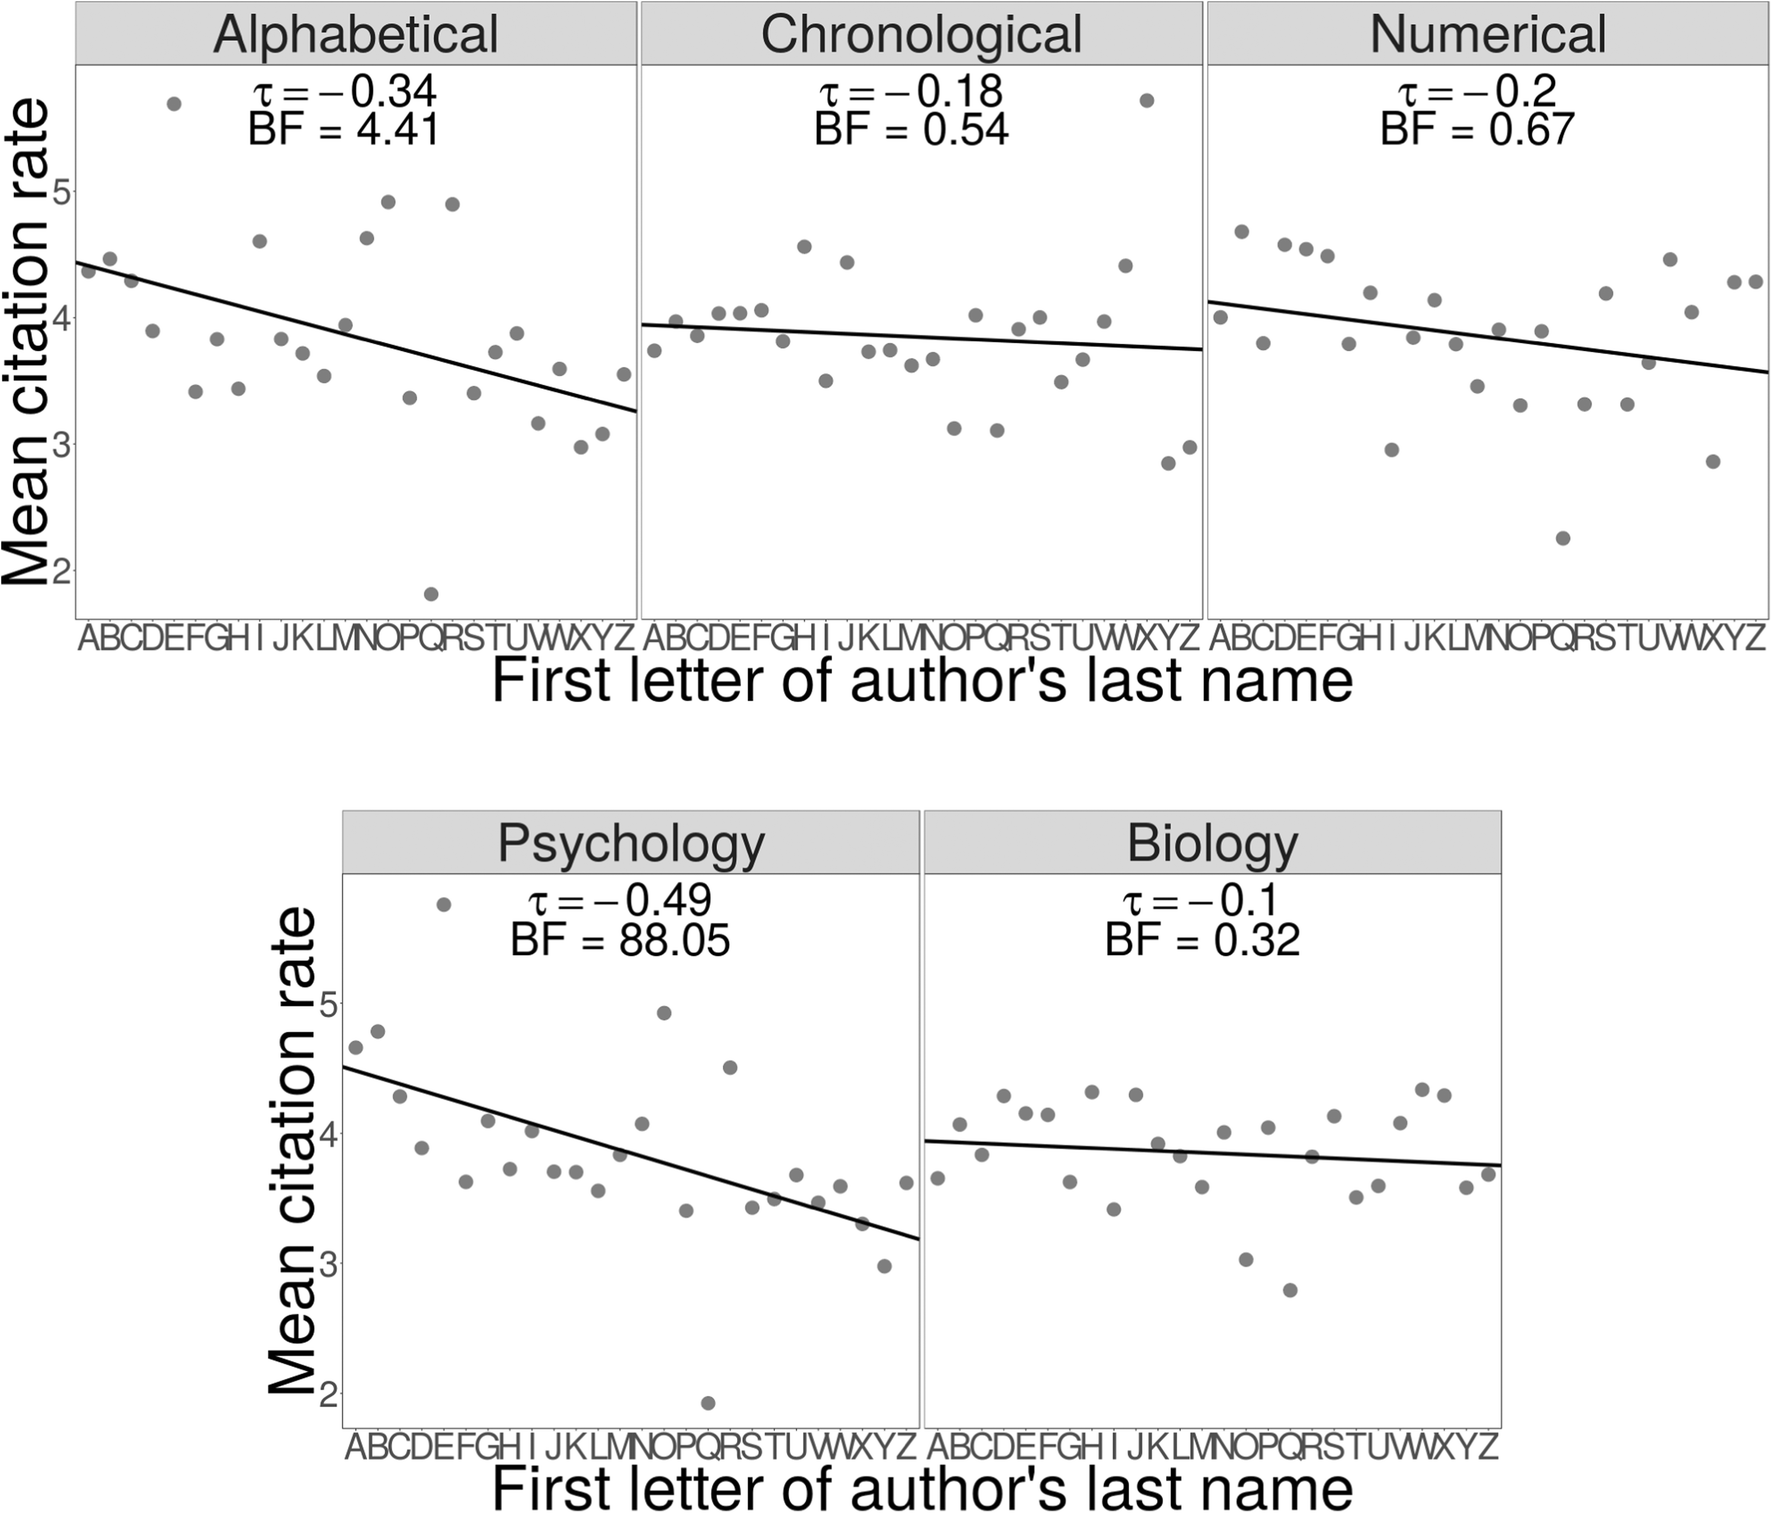 Order matters: Alphabetizing in-text citations biases